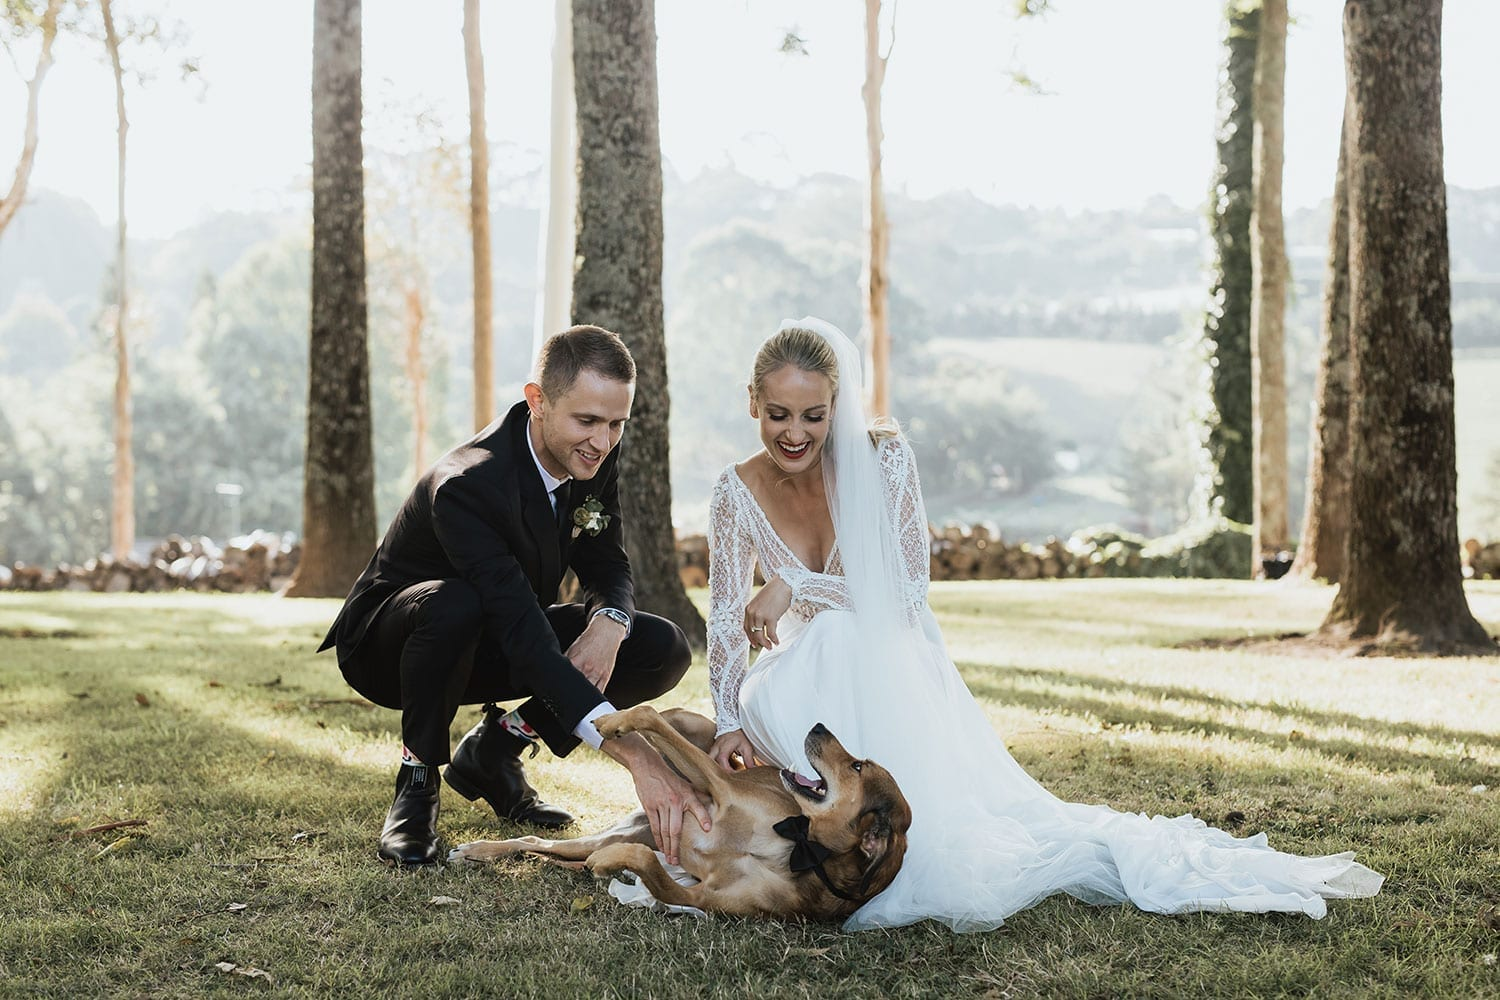 Vinka Design Features Real Weddings - Bride in custom made gown with bold lace bodice with fitted, long, beaded lace sleeves and floating skirt. With groom and dog